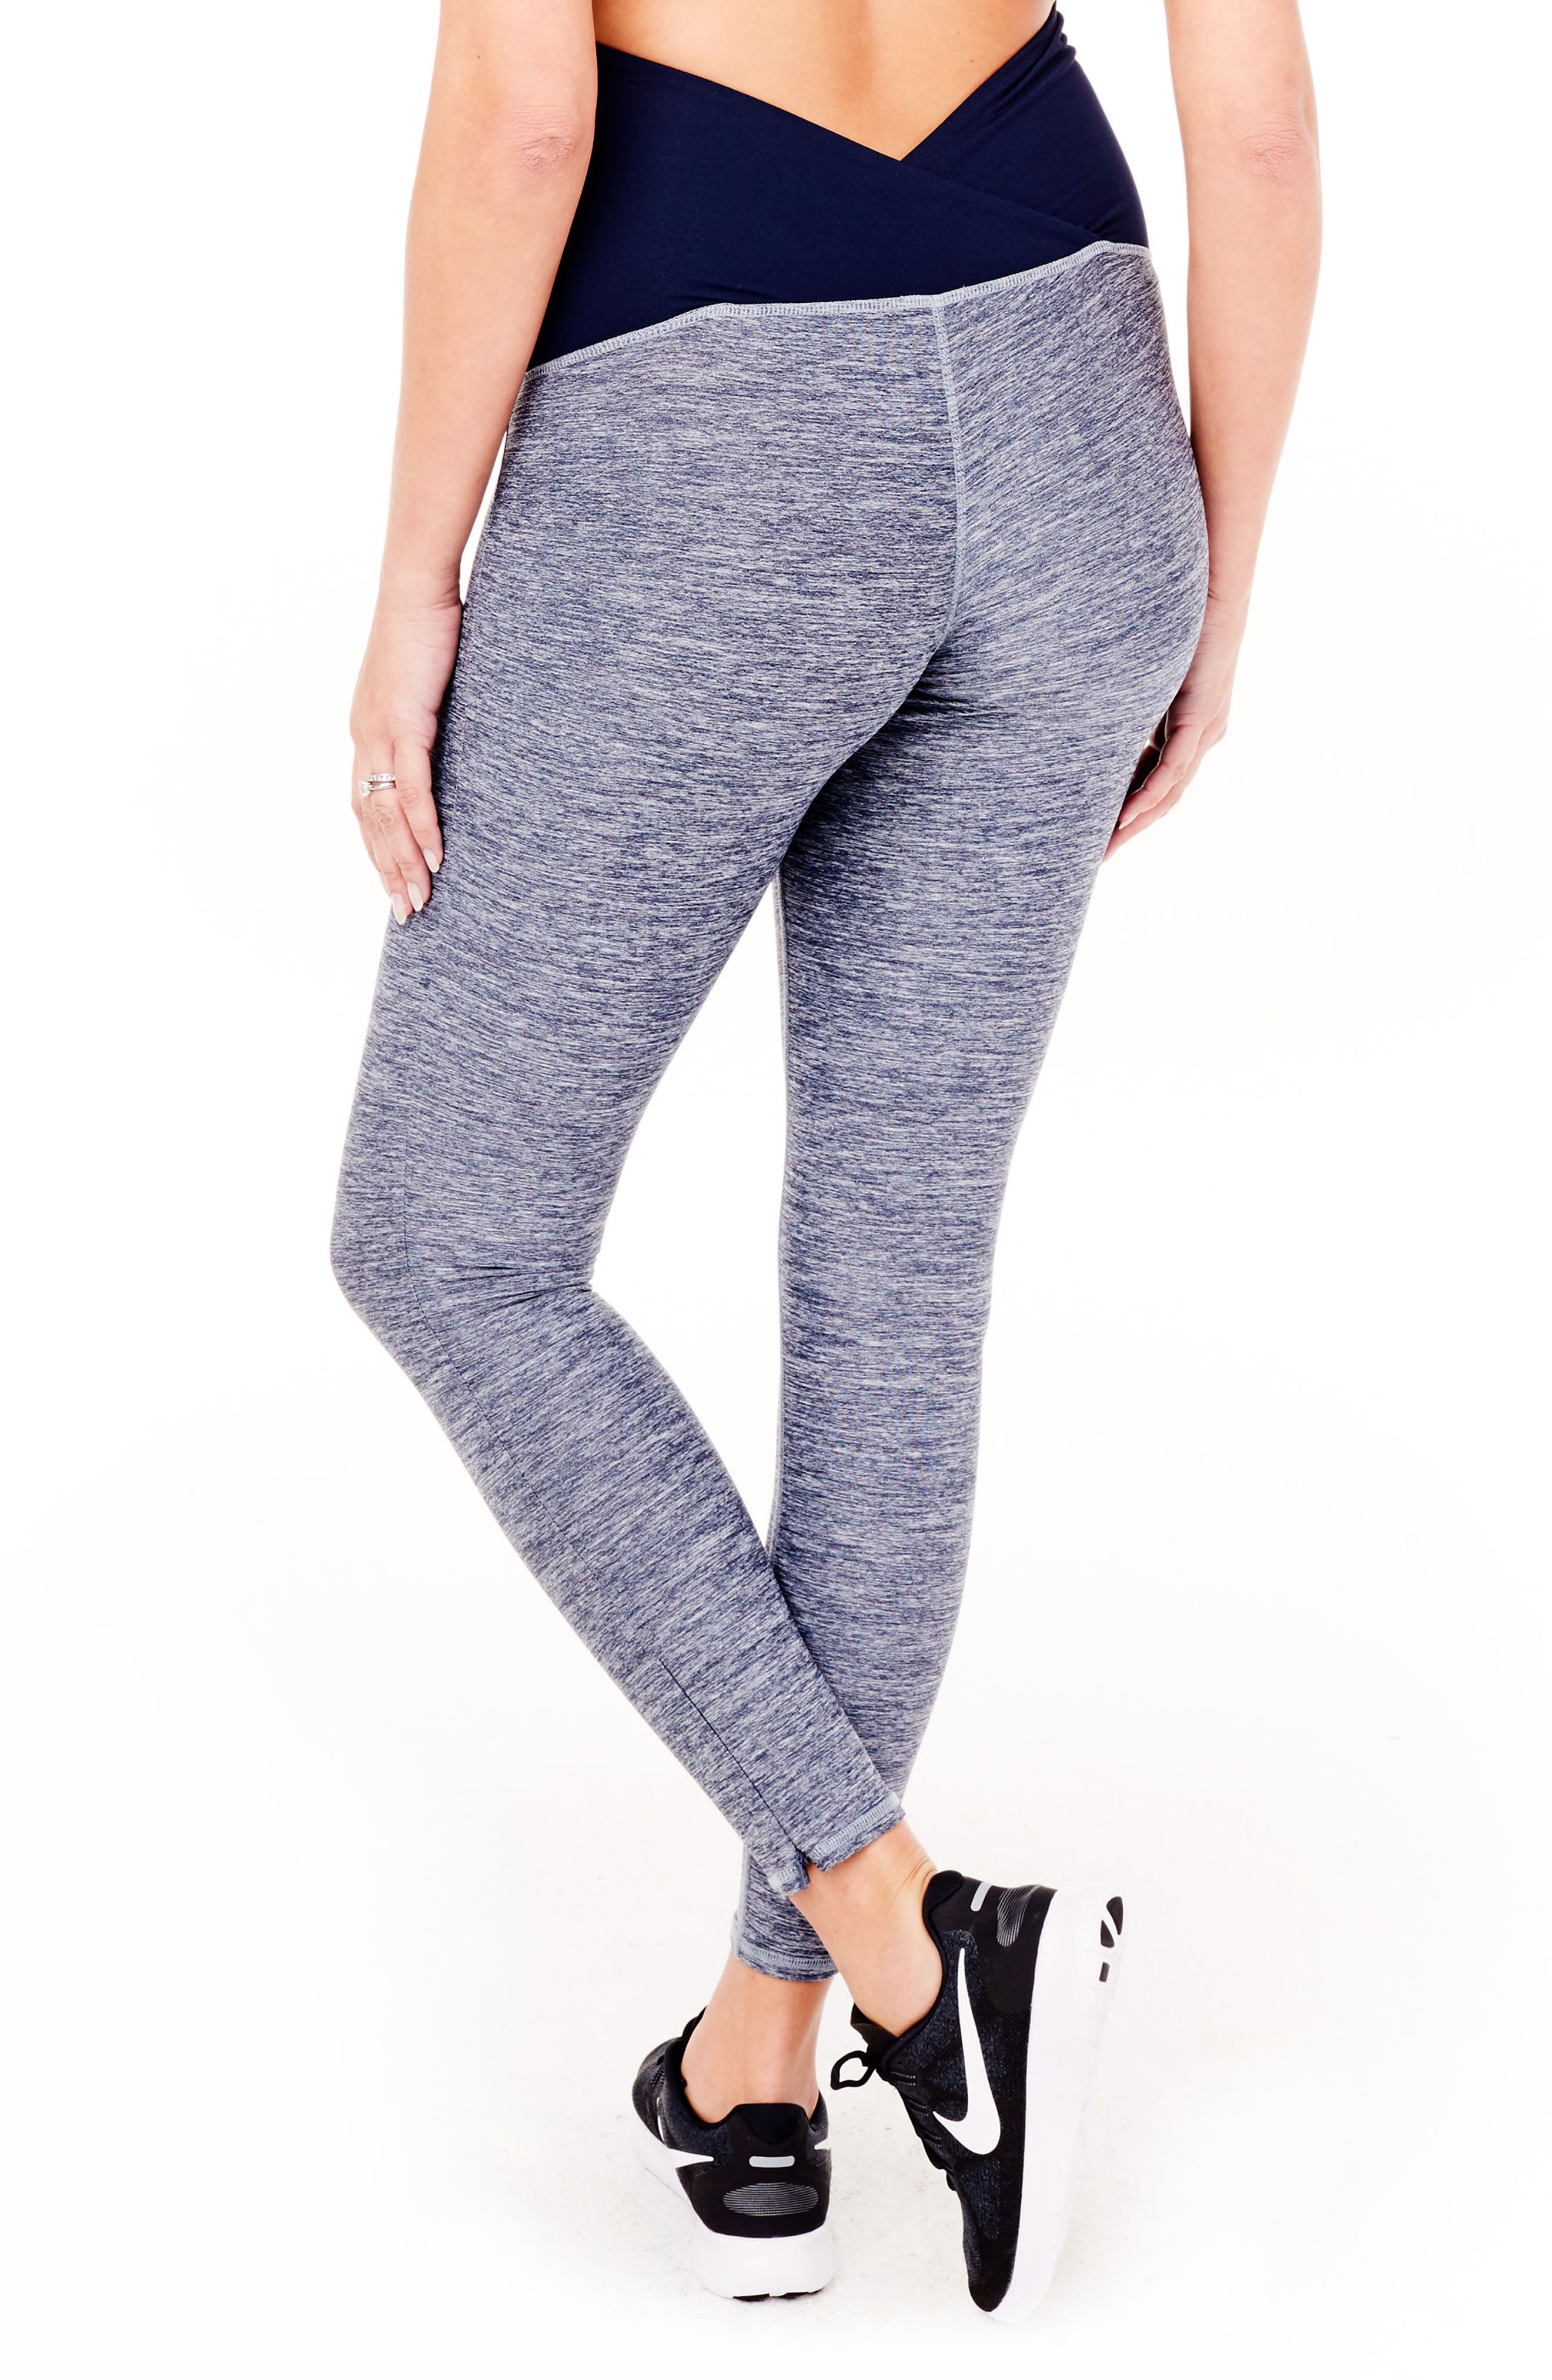 'Active' Maternity Leggings with Crossover Panel,                             Alternate thumbnail 2, color,                             417